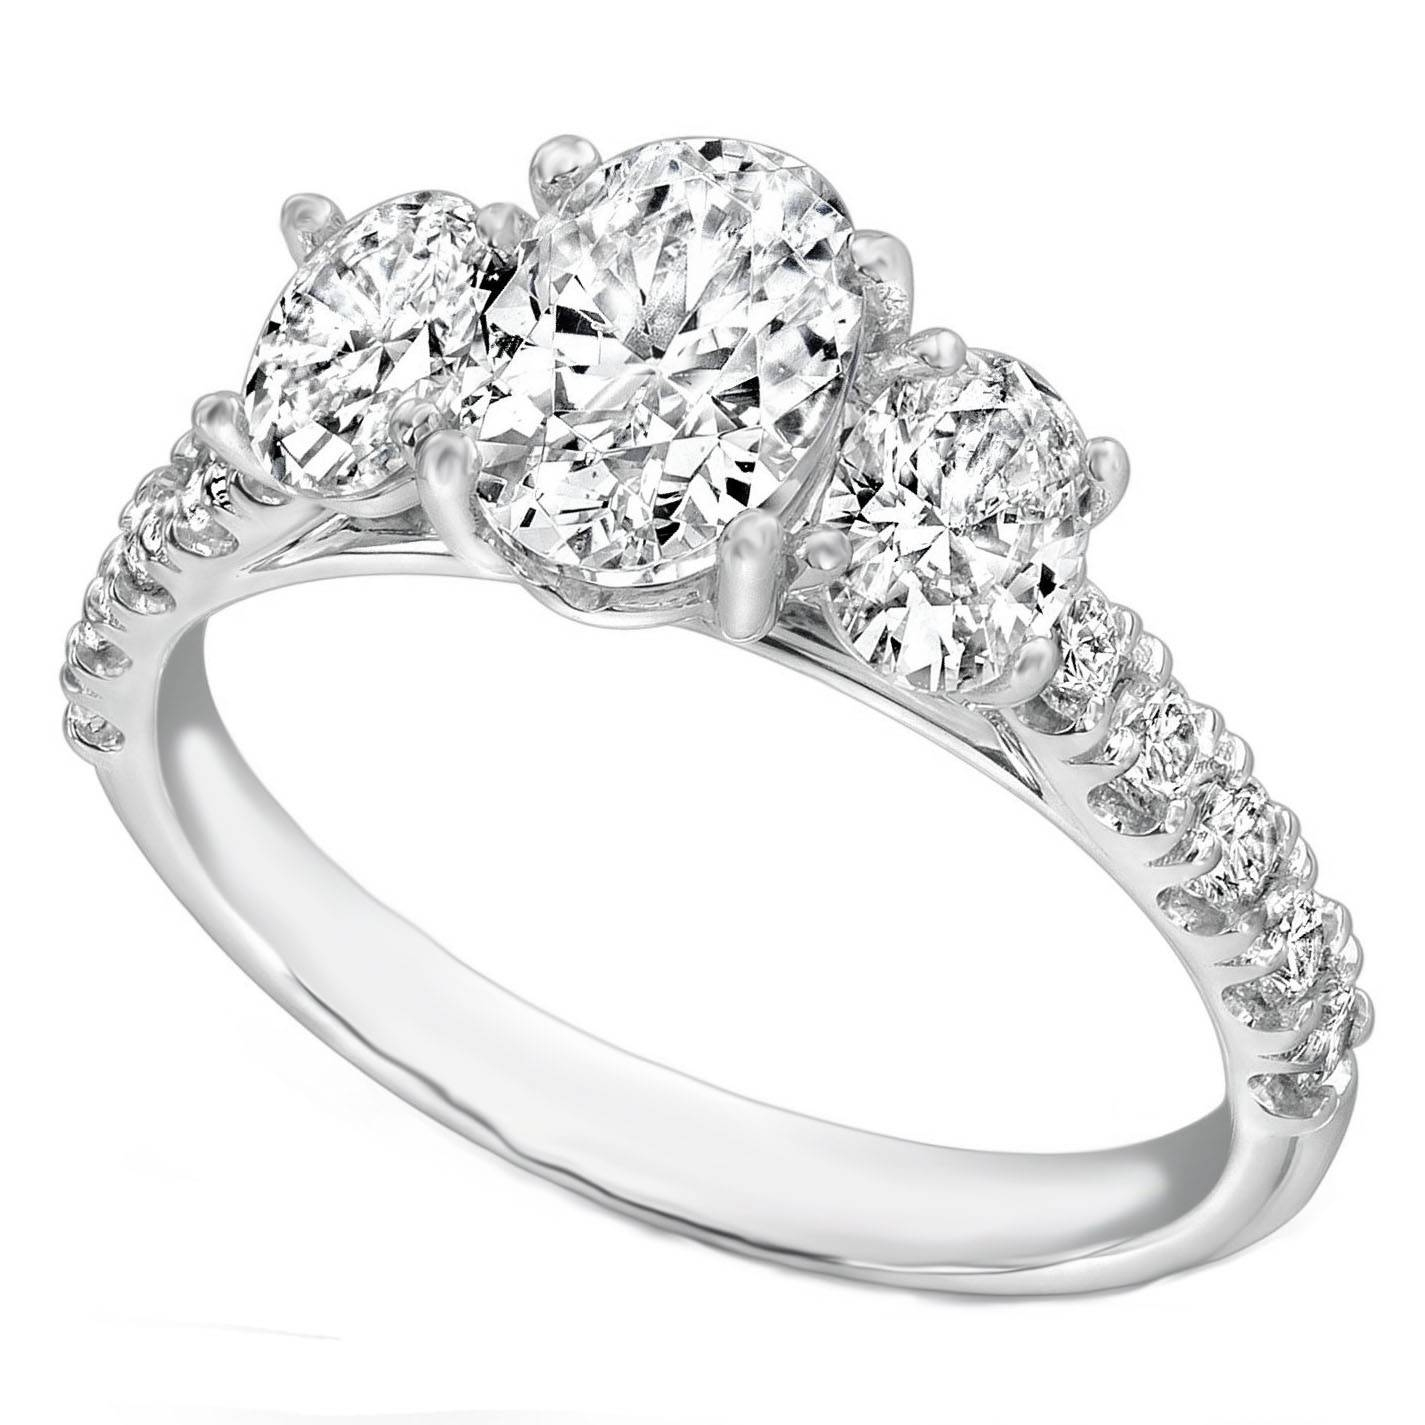 Wedding Rings : 3 Stone Engagement Rings With Side Stones 3 Stone In Three Stone Engagement Rings With Side Stones (View 5 of 15)